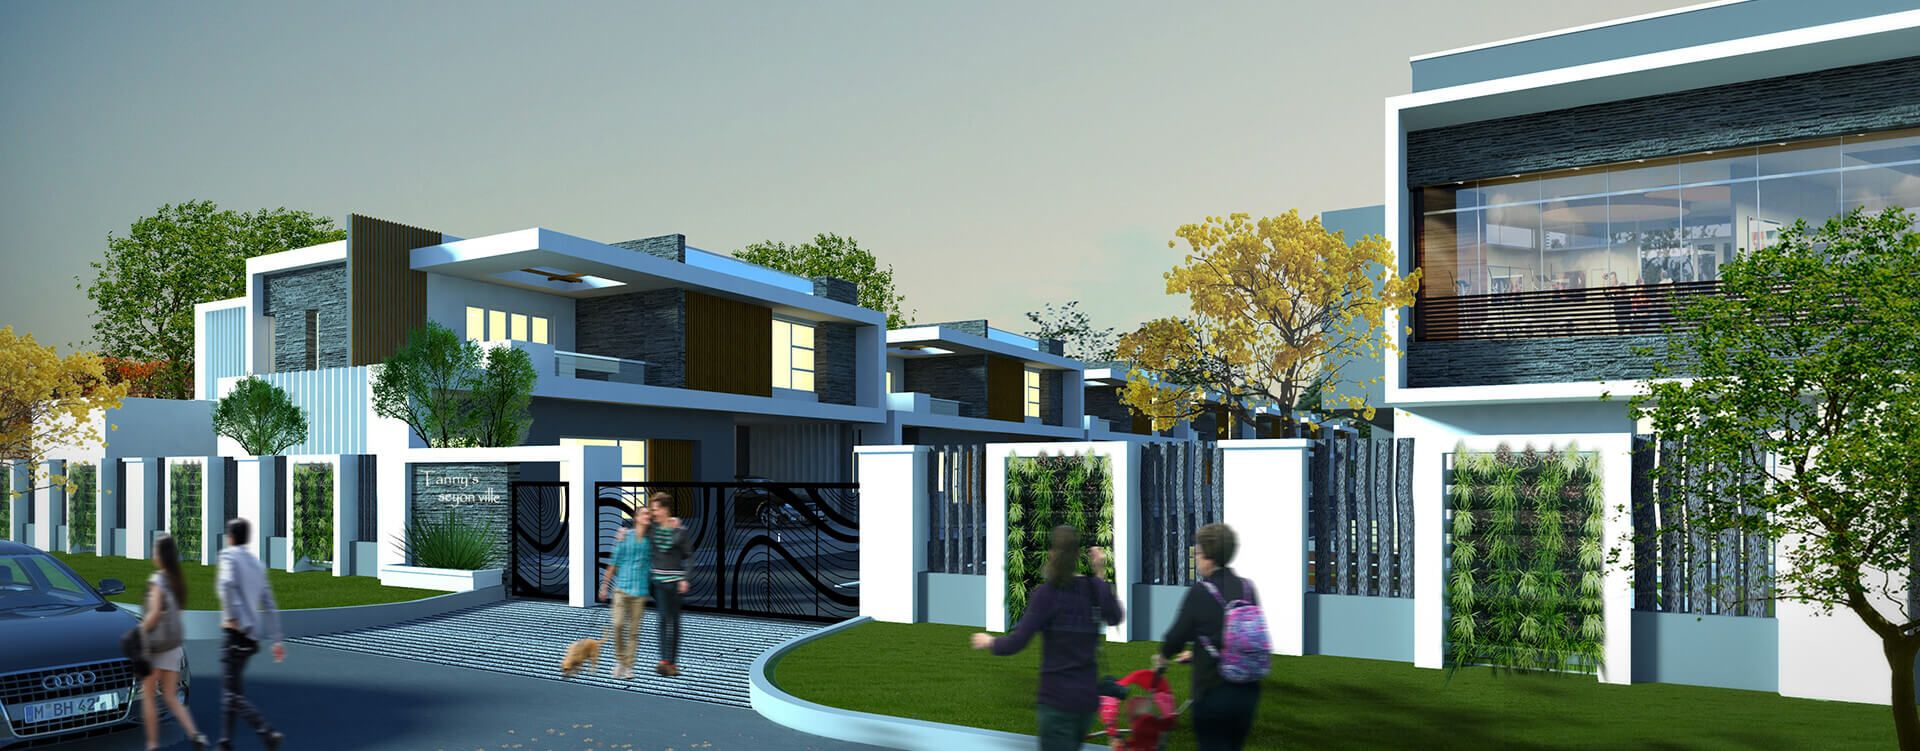 Individual House for Sale Thudiyalur in Coimbatore